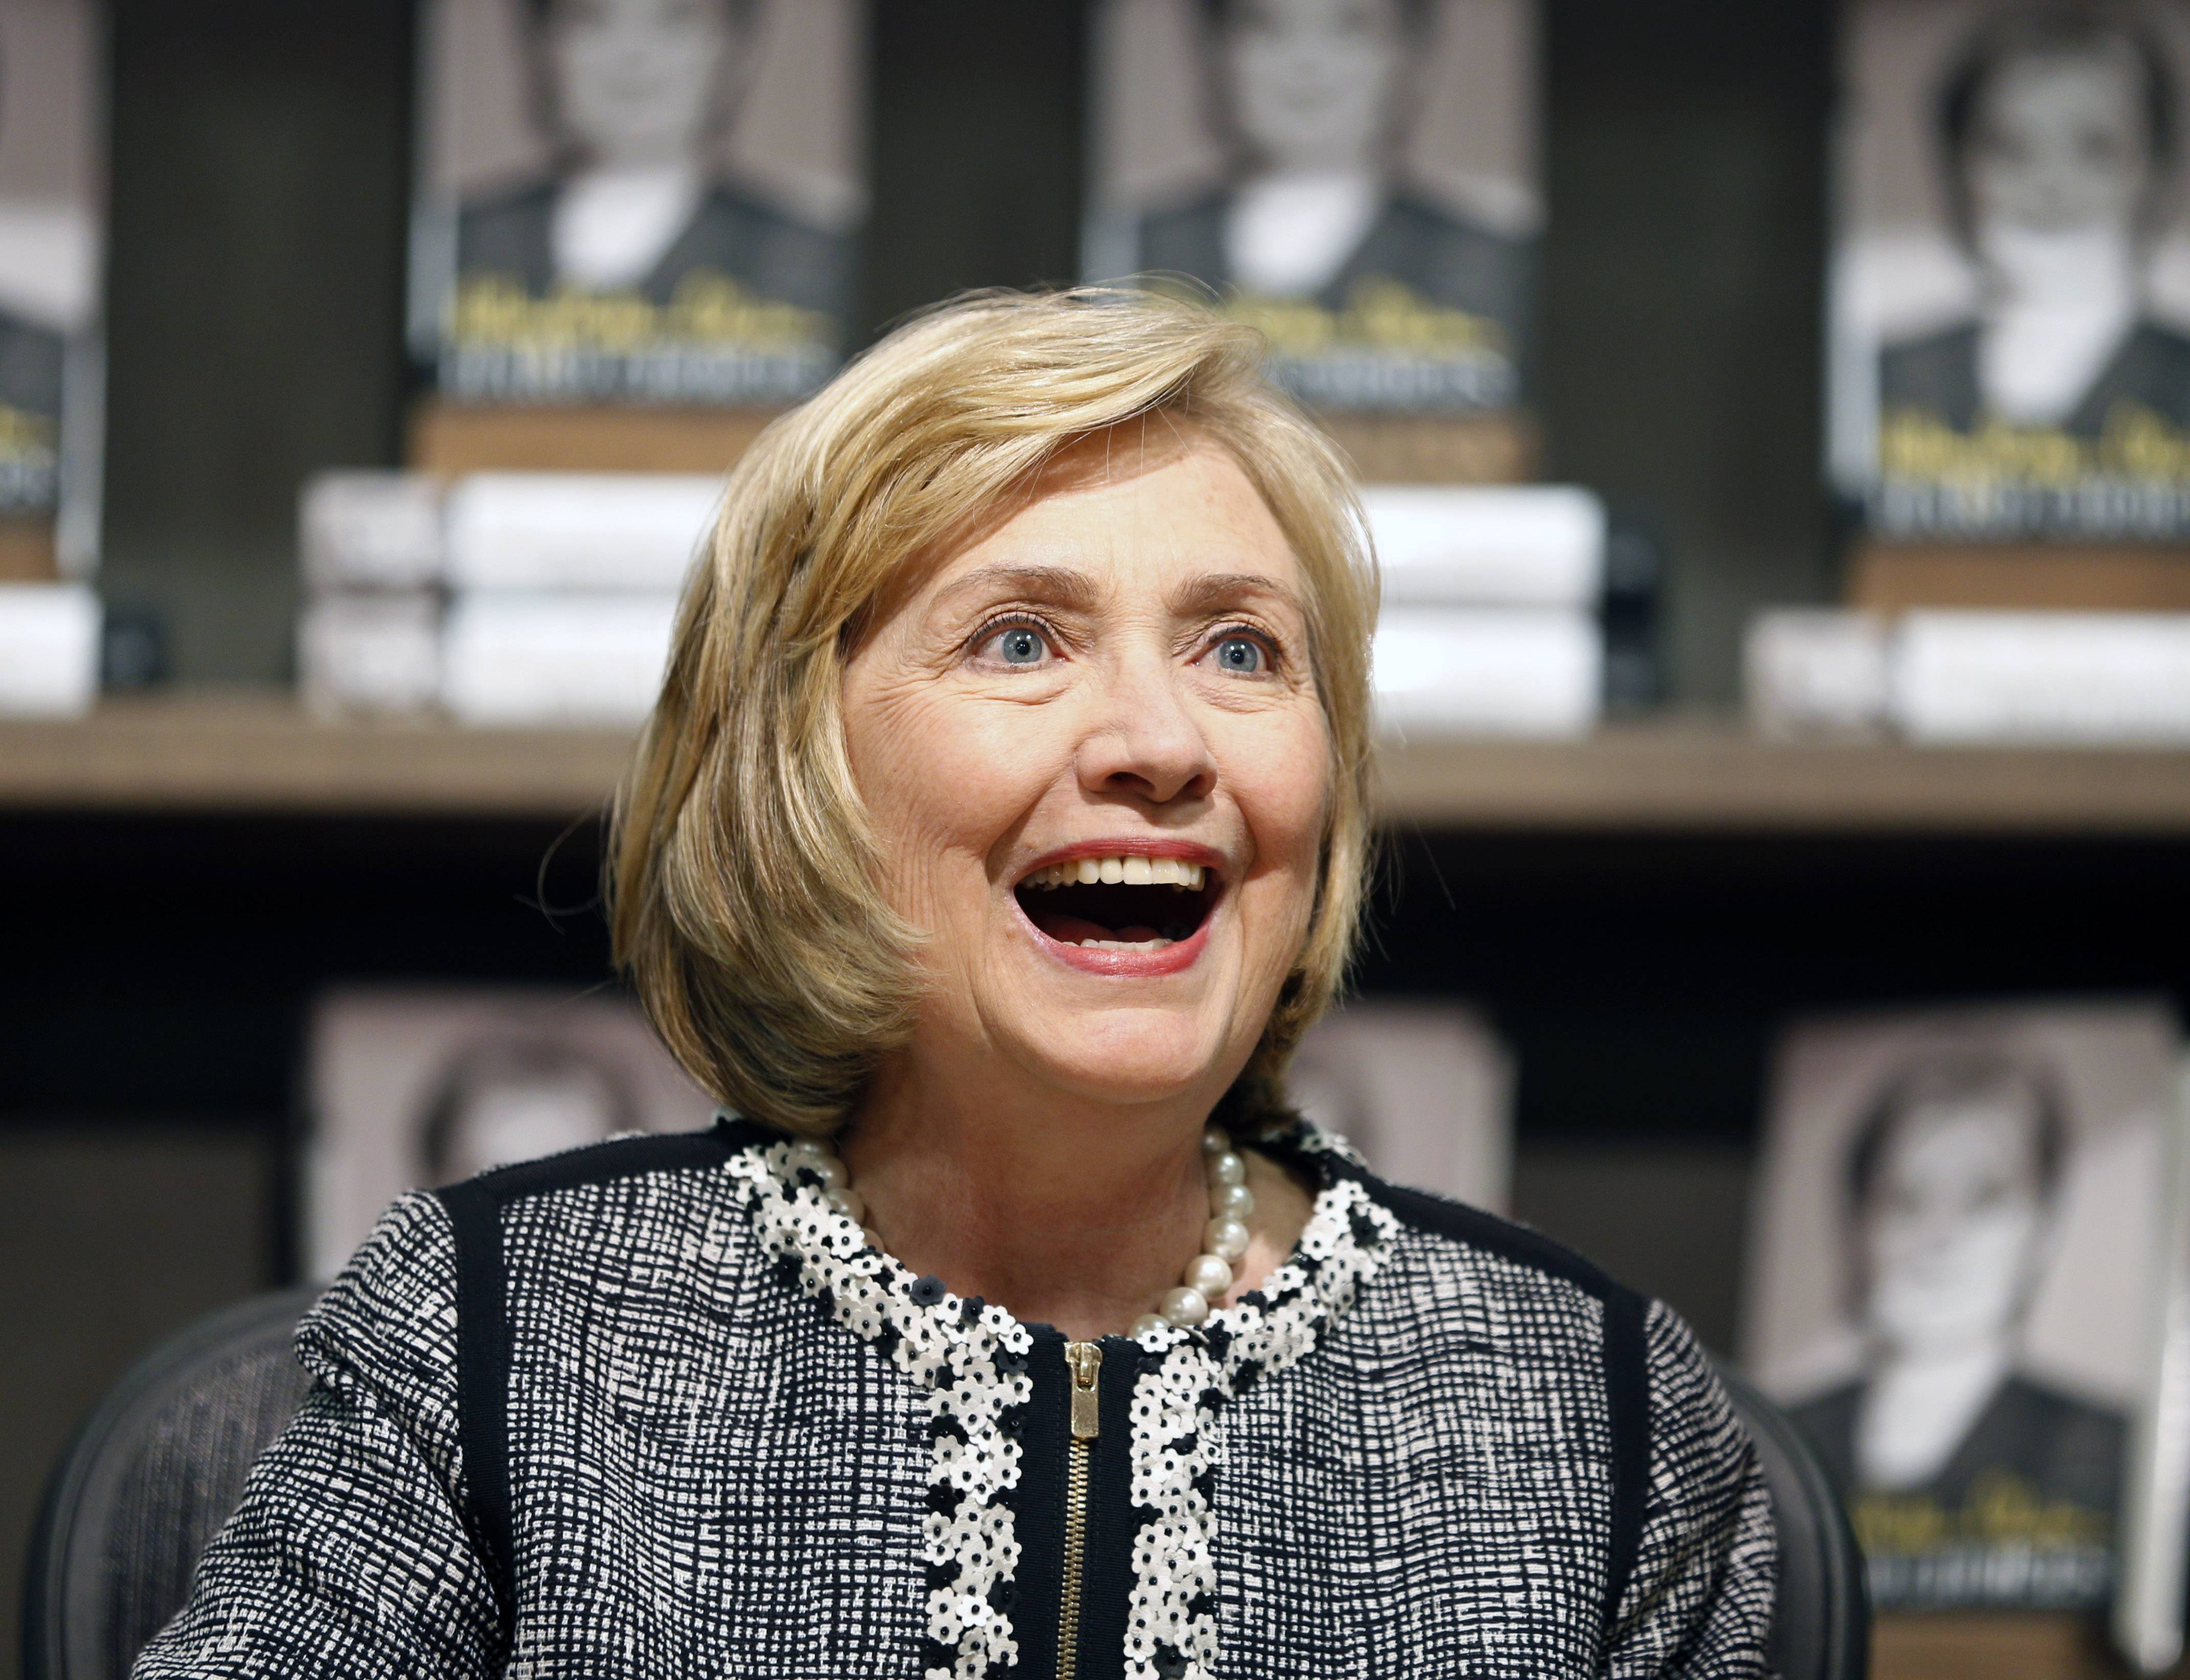 The White House said the president and first lady planned to see Hillary Rodham Clinton Wednesday at a party on Martha's Vineyard for Ann Jordan, wife of Democratic adviser Vernon Jordan. Clinton is on the Massachusetts island for a memoir-signing session at a bookstore, while the Obamas are in the midst of a two-week vacation.